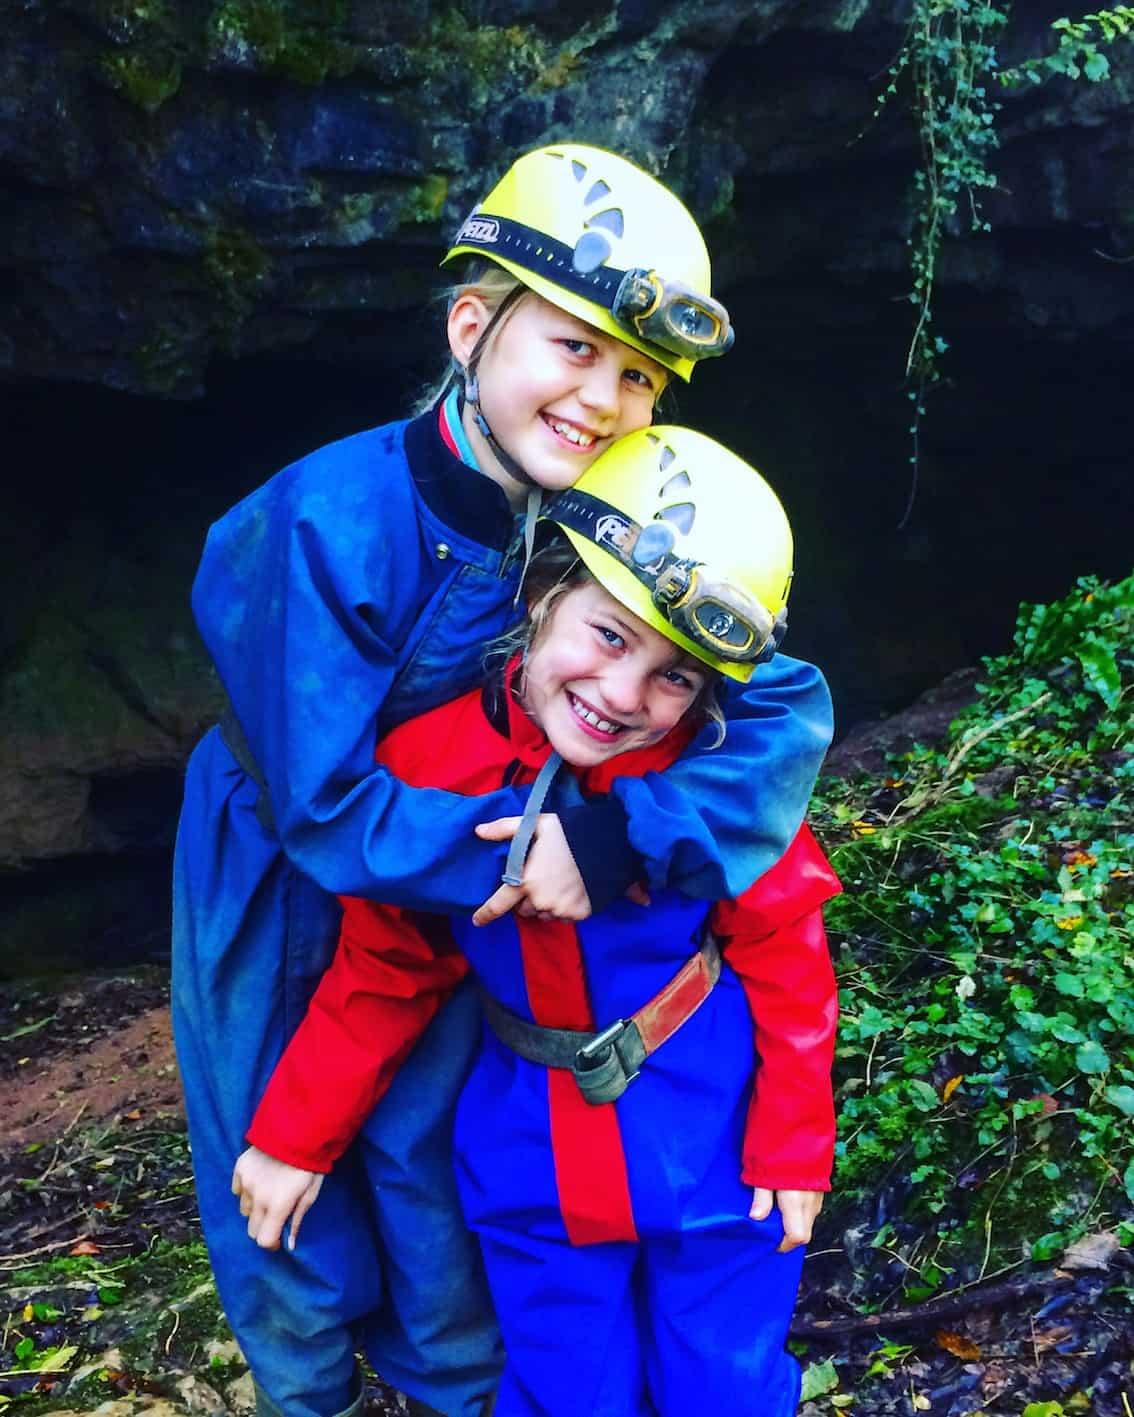 caving in devon. kids dressed in caving gear